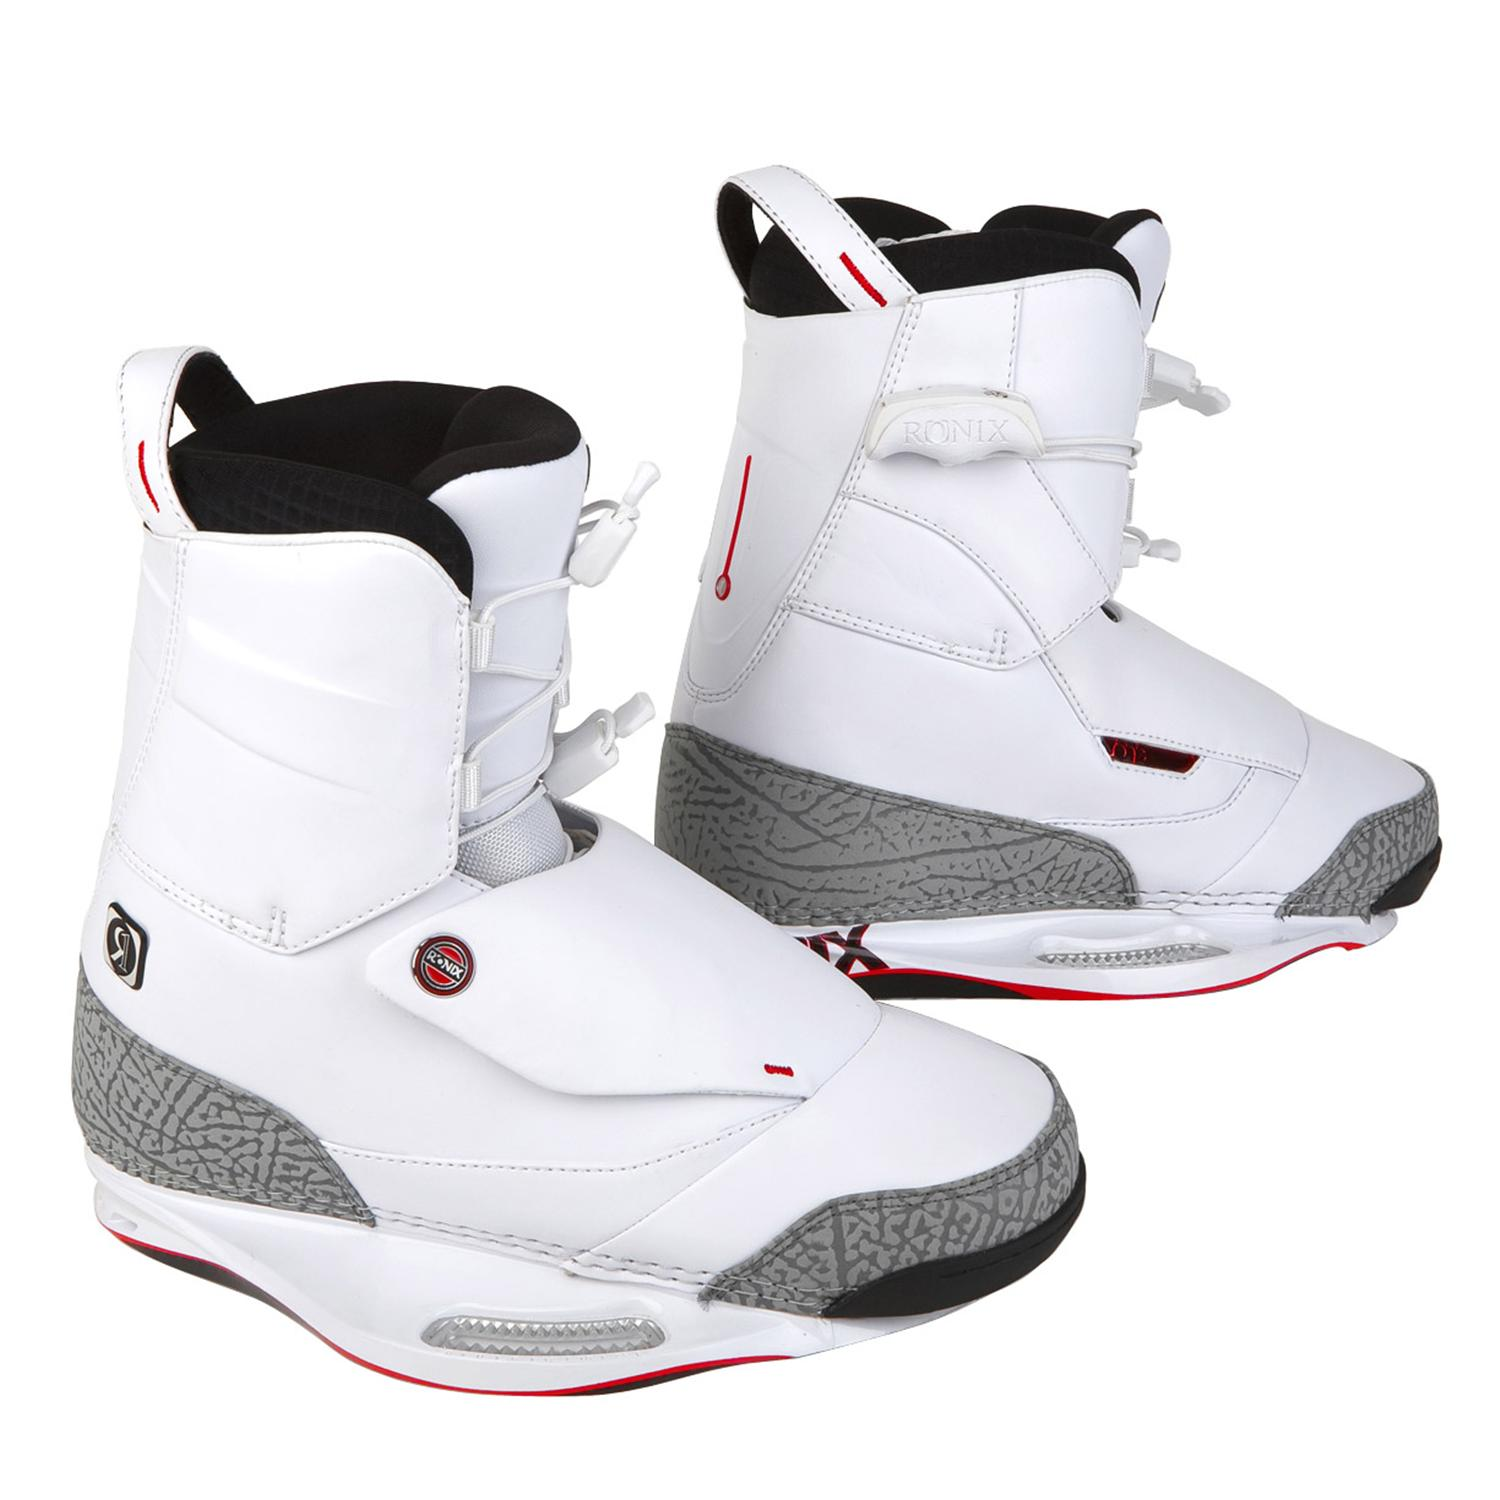 Ronix One Wakeboard Boots (White) 2010